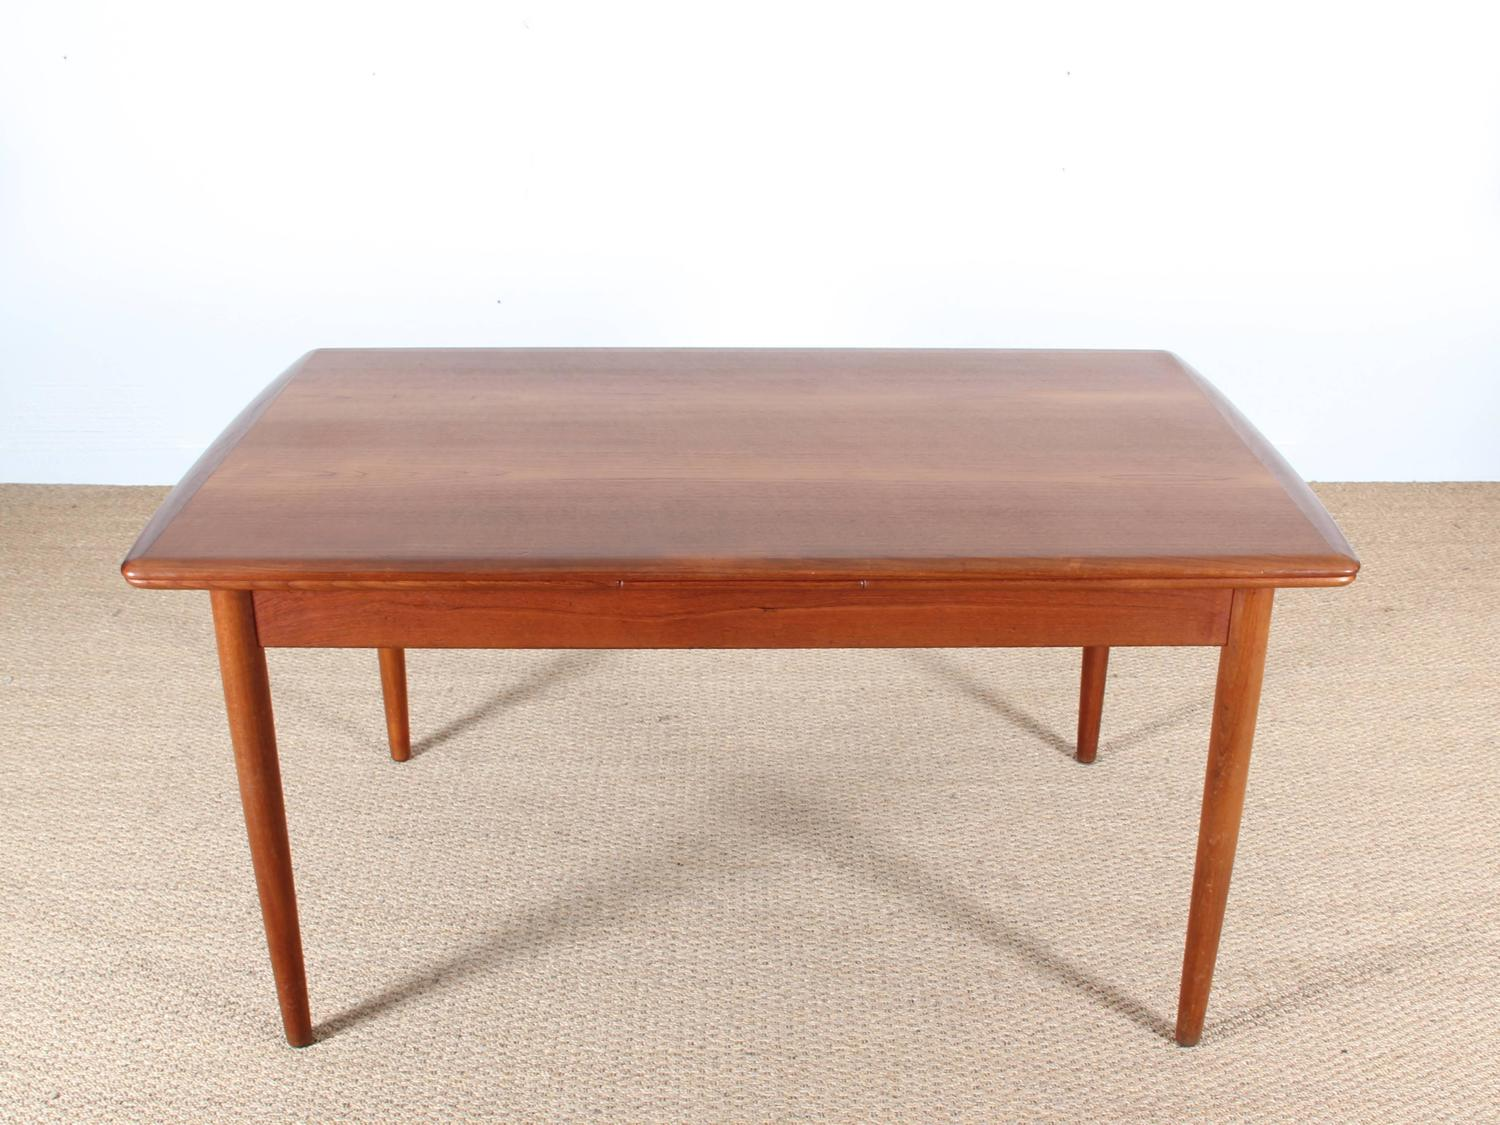 Mid century modern scandinavian dining table in teak seat for Dining room table 4 seater